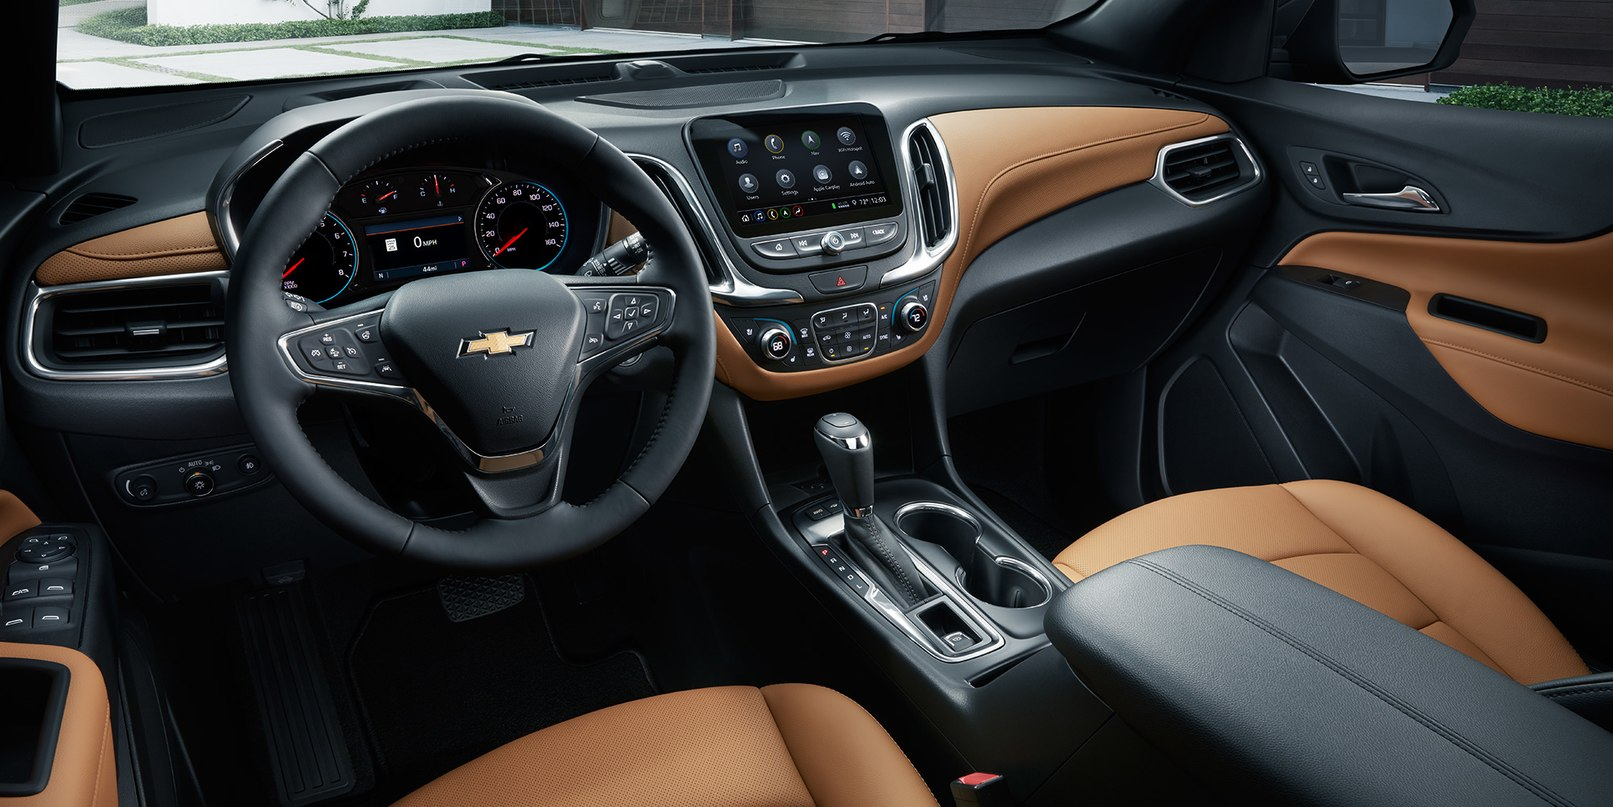 Interior of the 2019 Chevy Equinox